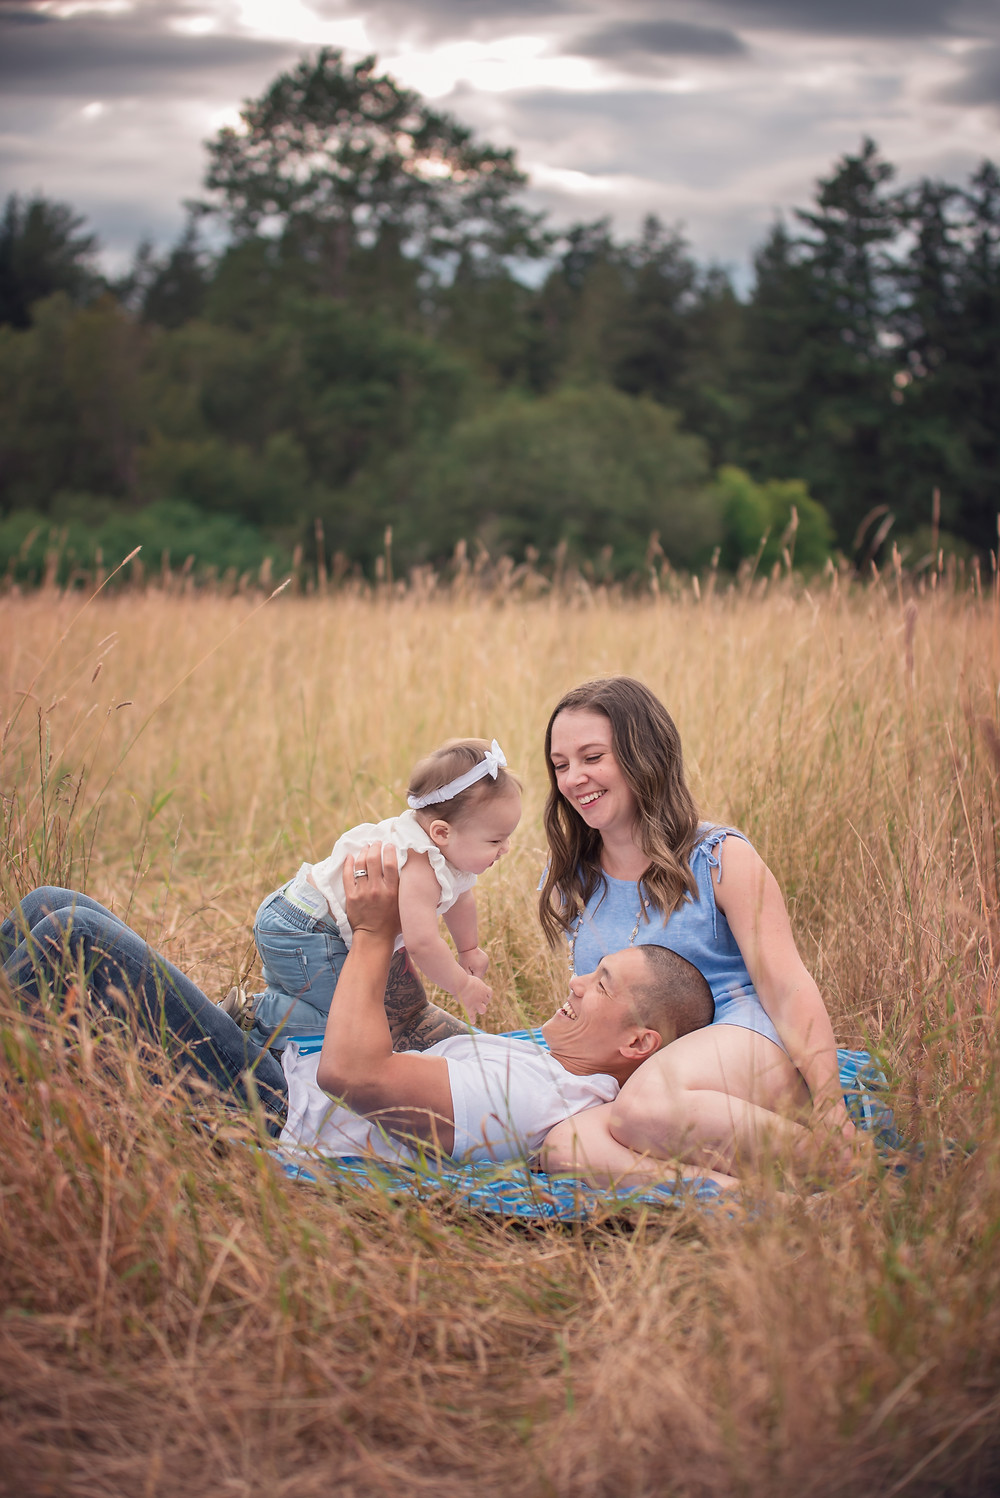 Victoria BC family photographer, making family photos fun, Getting your spouse on board with family photos